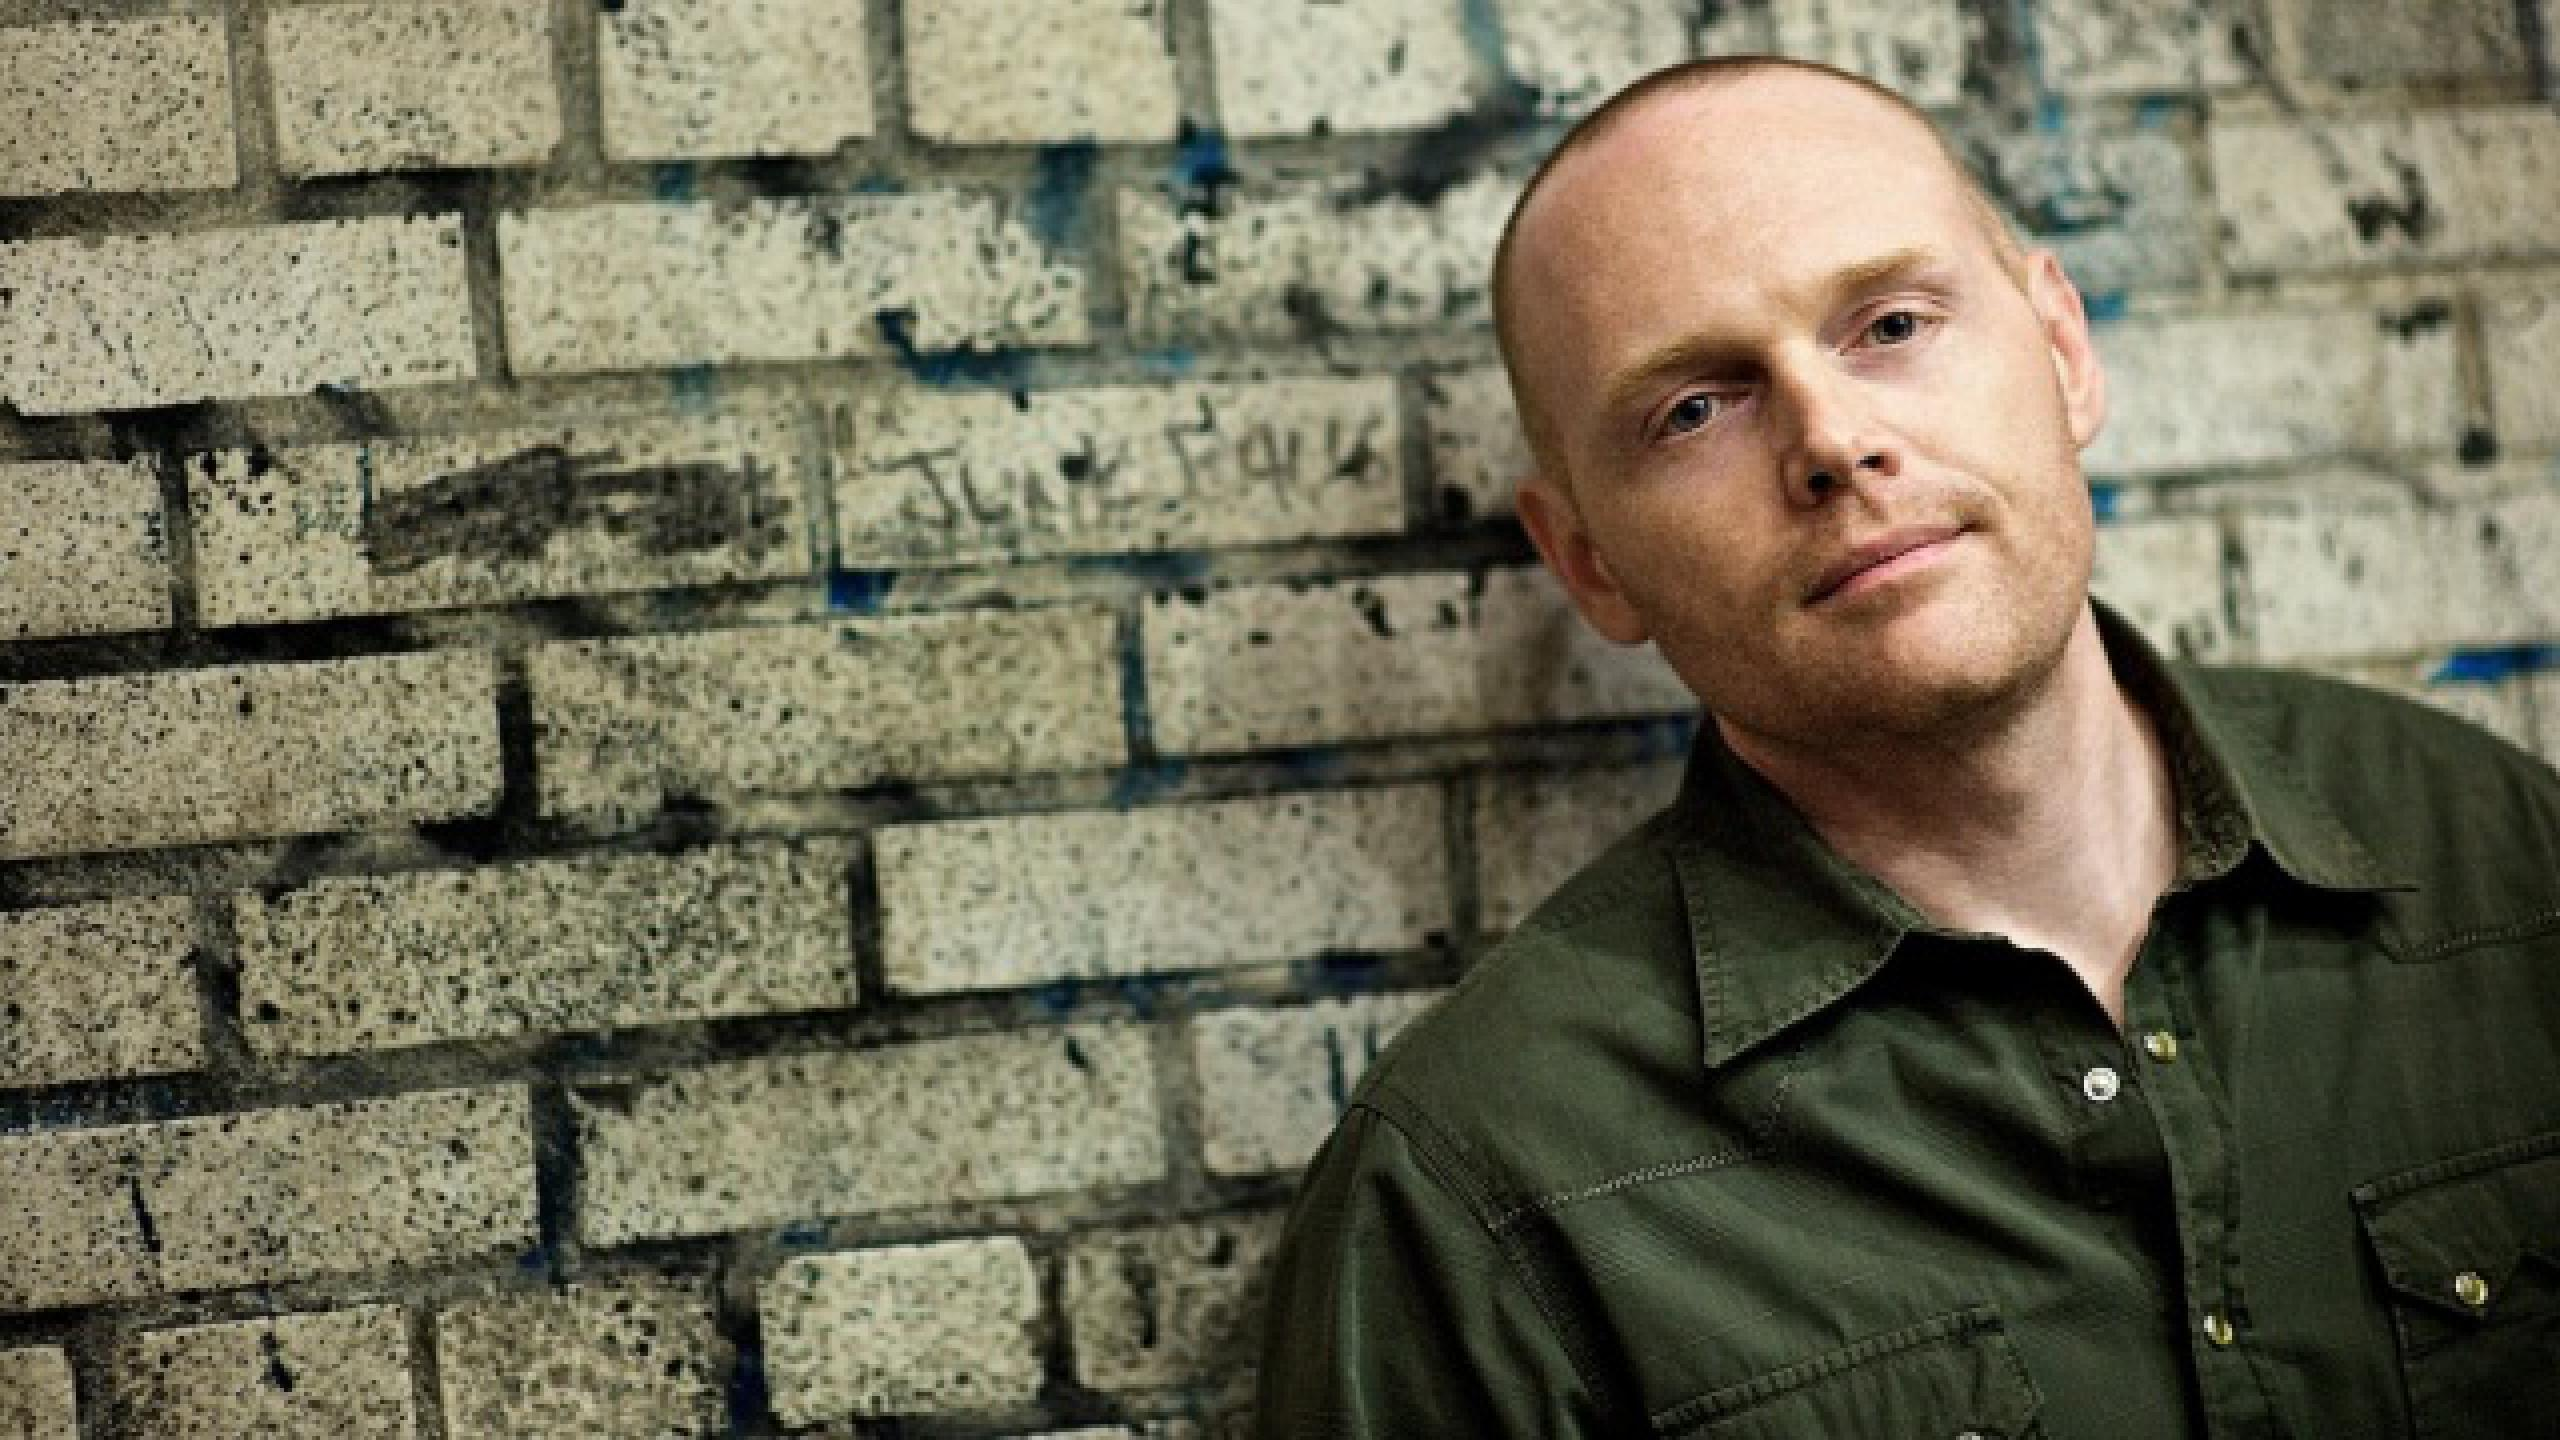 Bill Burr Tour Dates 2021 2022 Bill Burr Tickets And Concerts Wegow United States